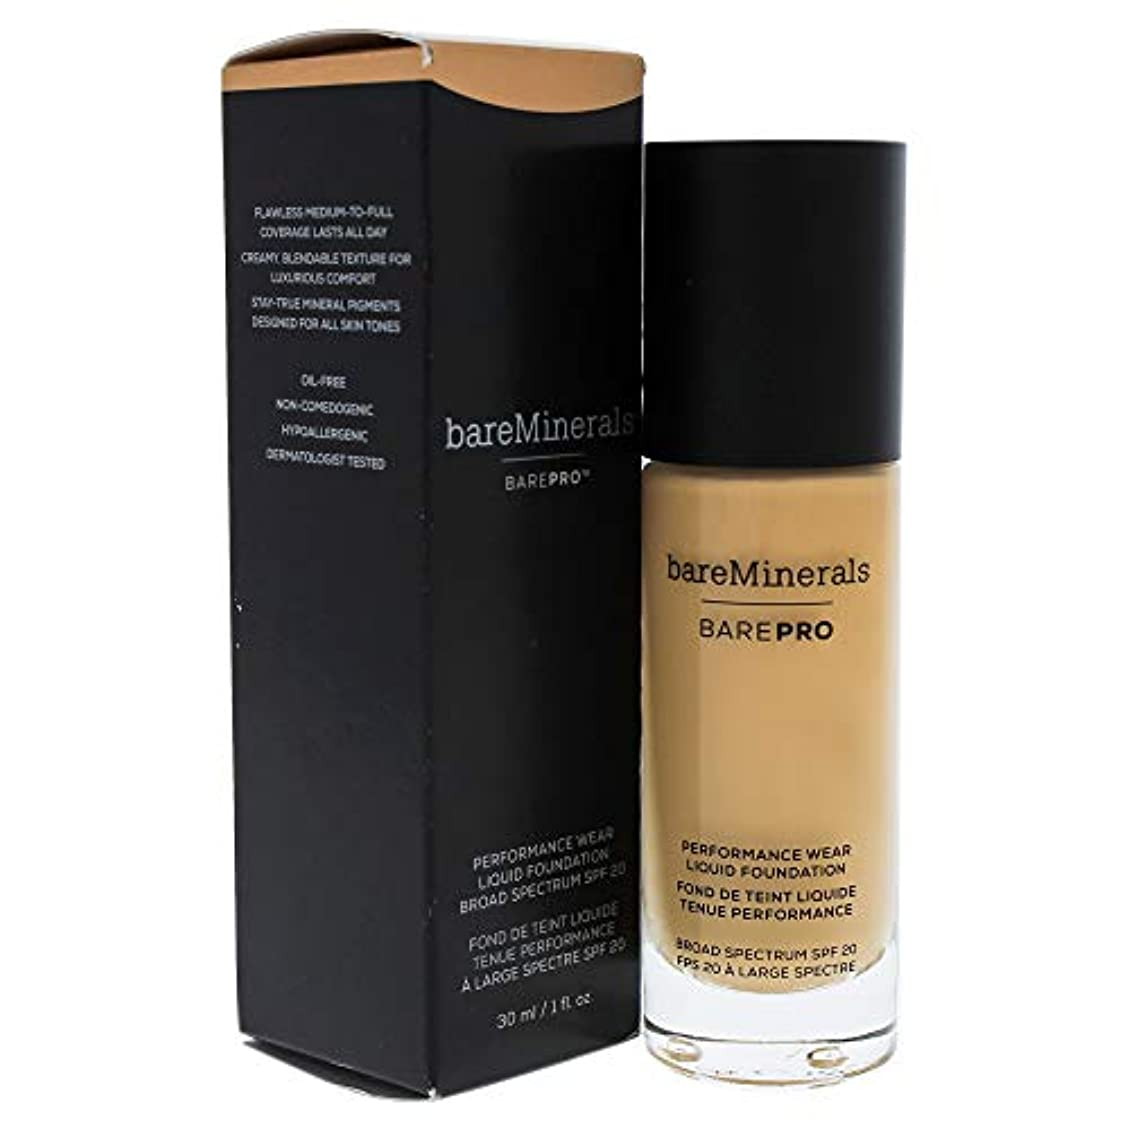 曲機会ビジョンベアミネラル BarePro Performance Wear Liquid Foundation SPF20 - # 16 Sandstone 30ml/1oz並行輸入品